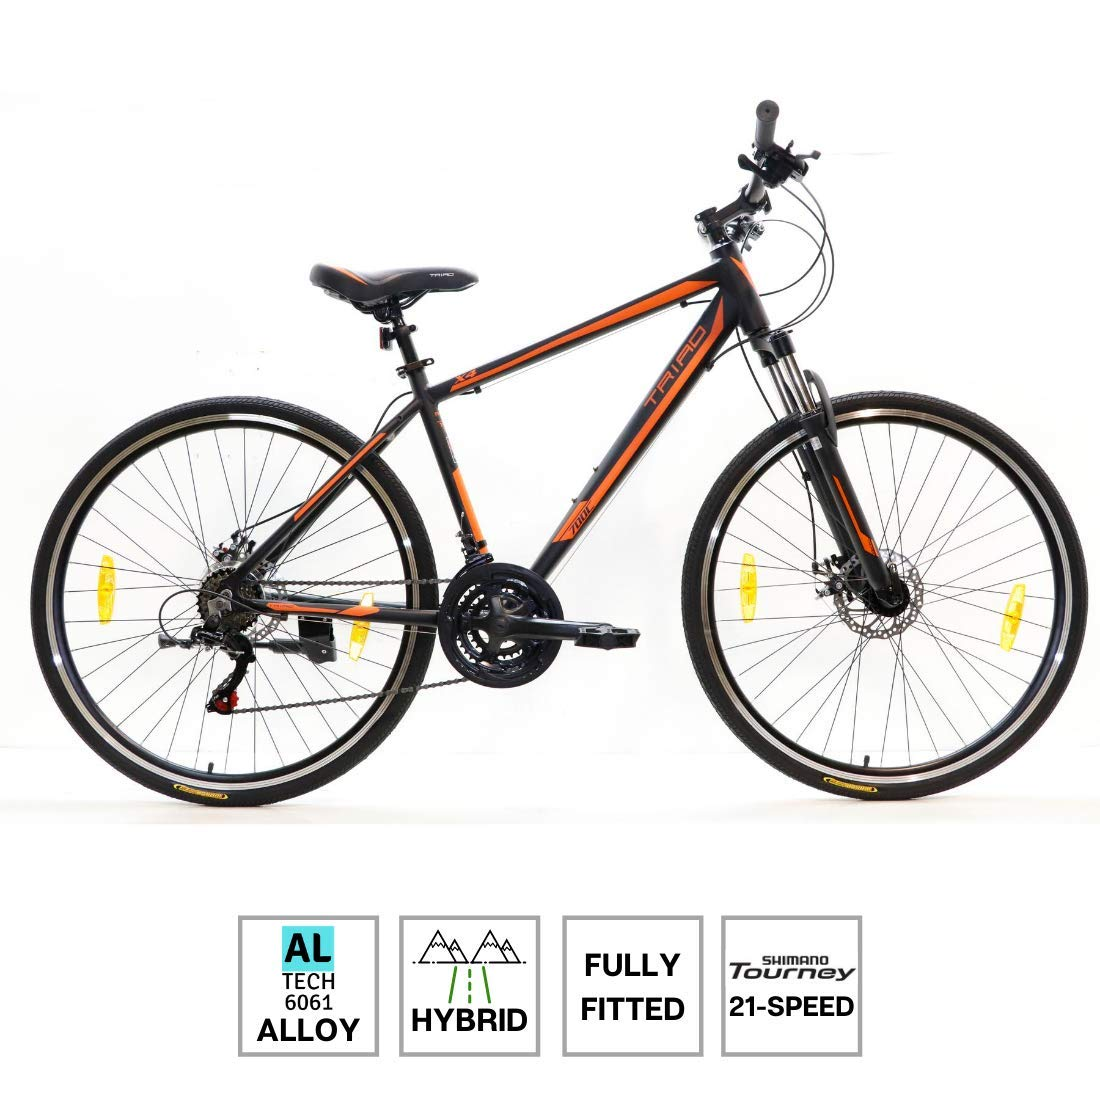 One of the Best Bicycle for adults in India according to grabitonce.in